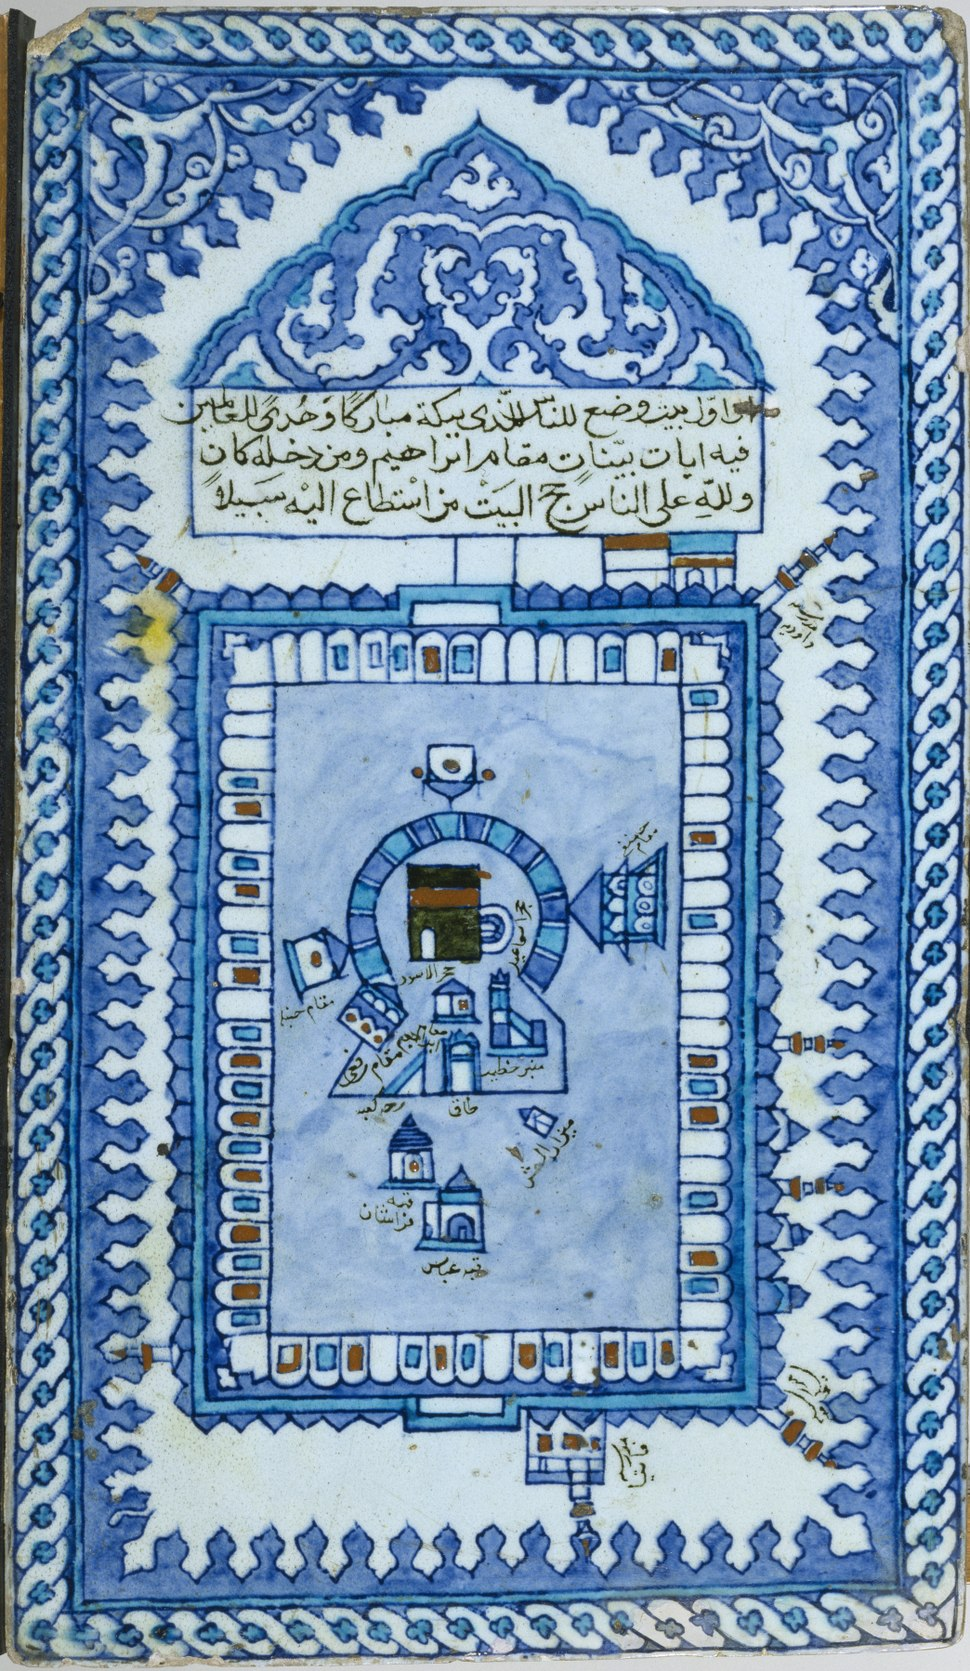 Turkish - Tile with the Great Mosque of Mecca - Walters 481307 - View A